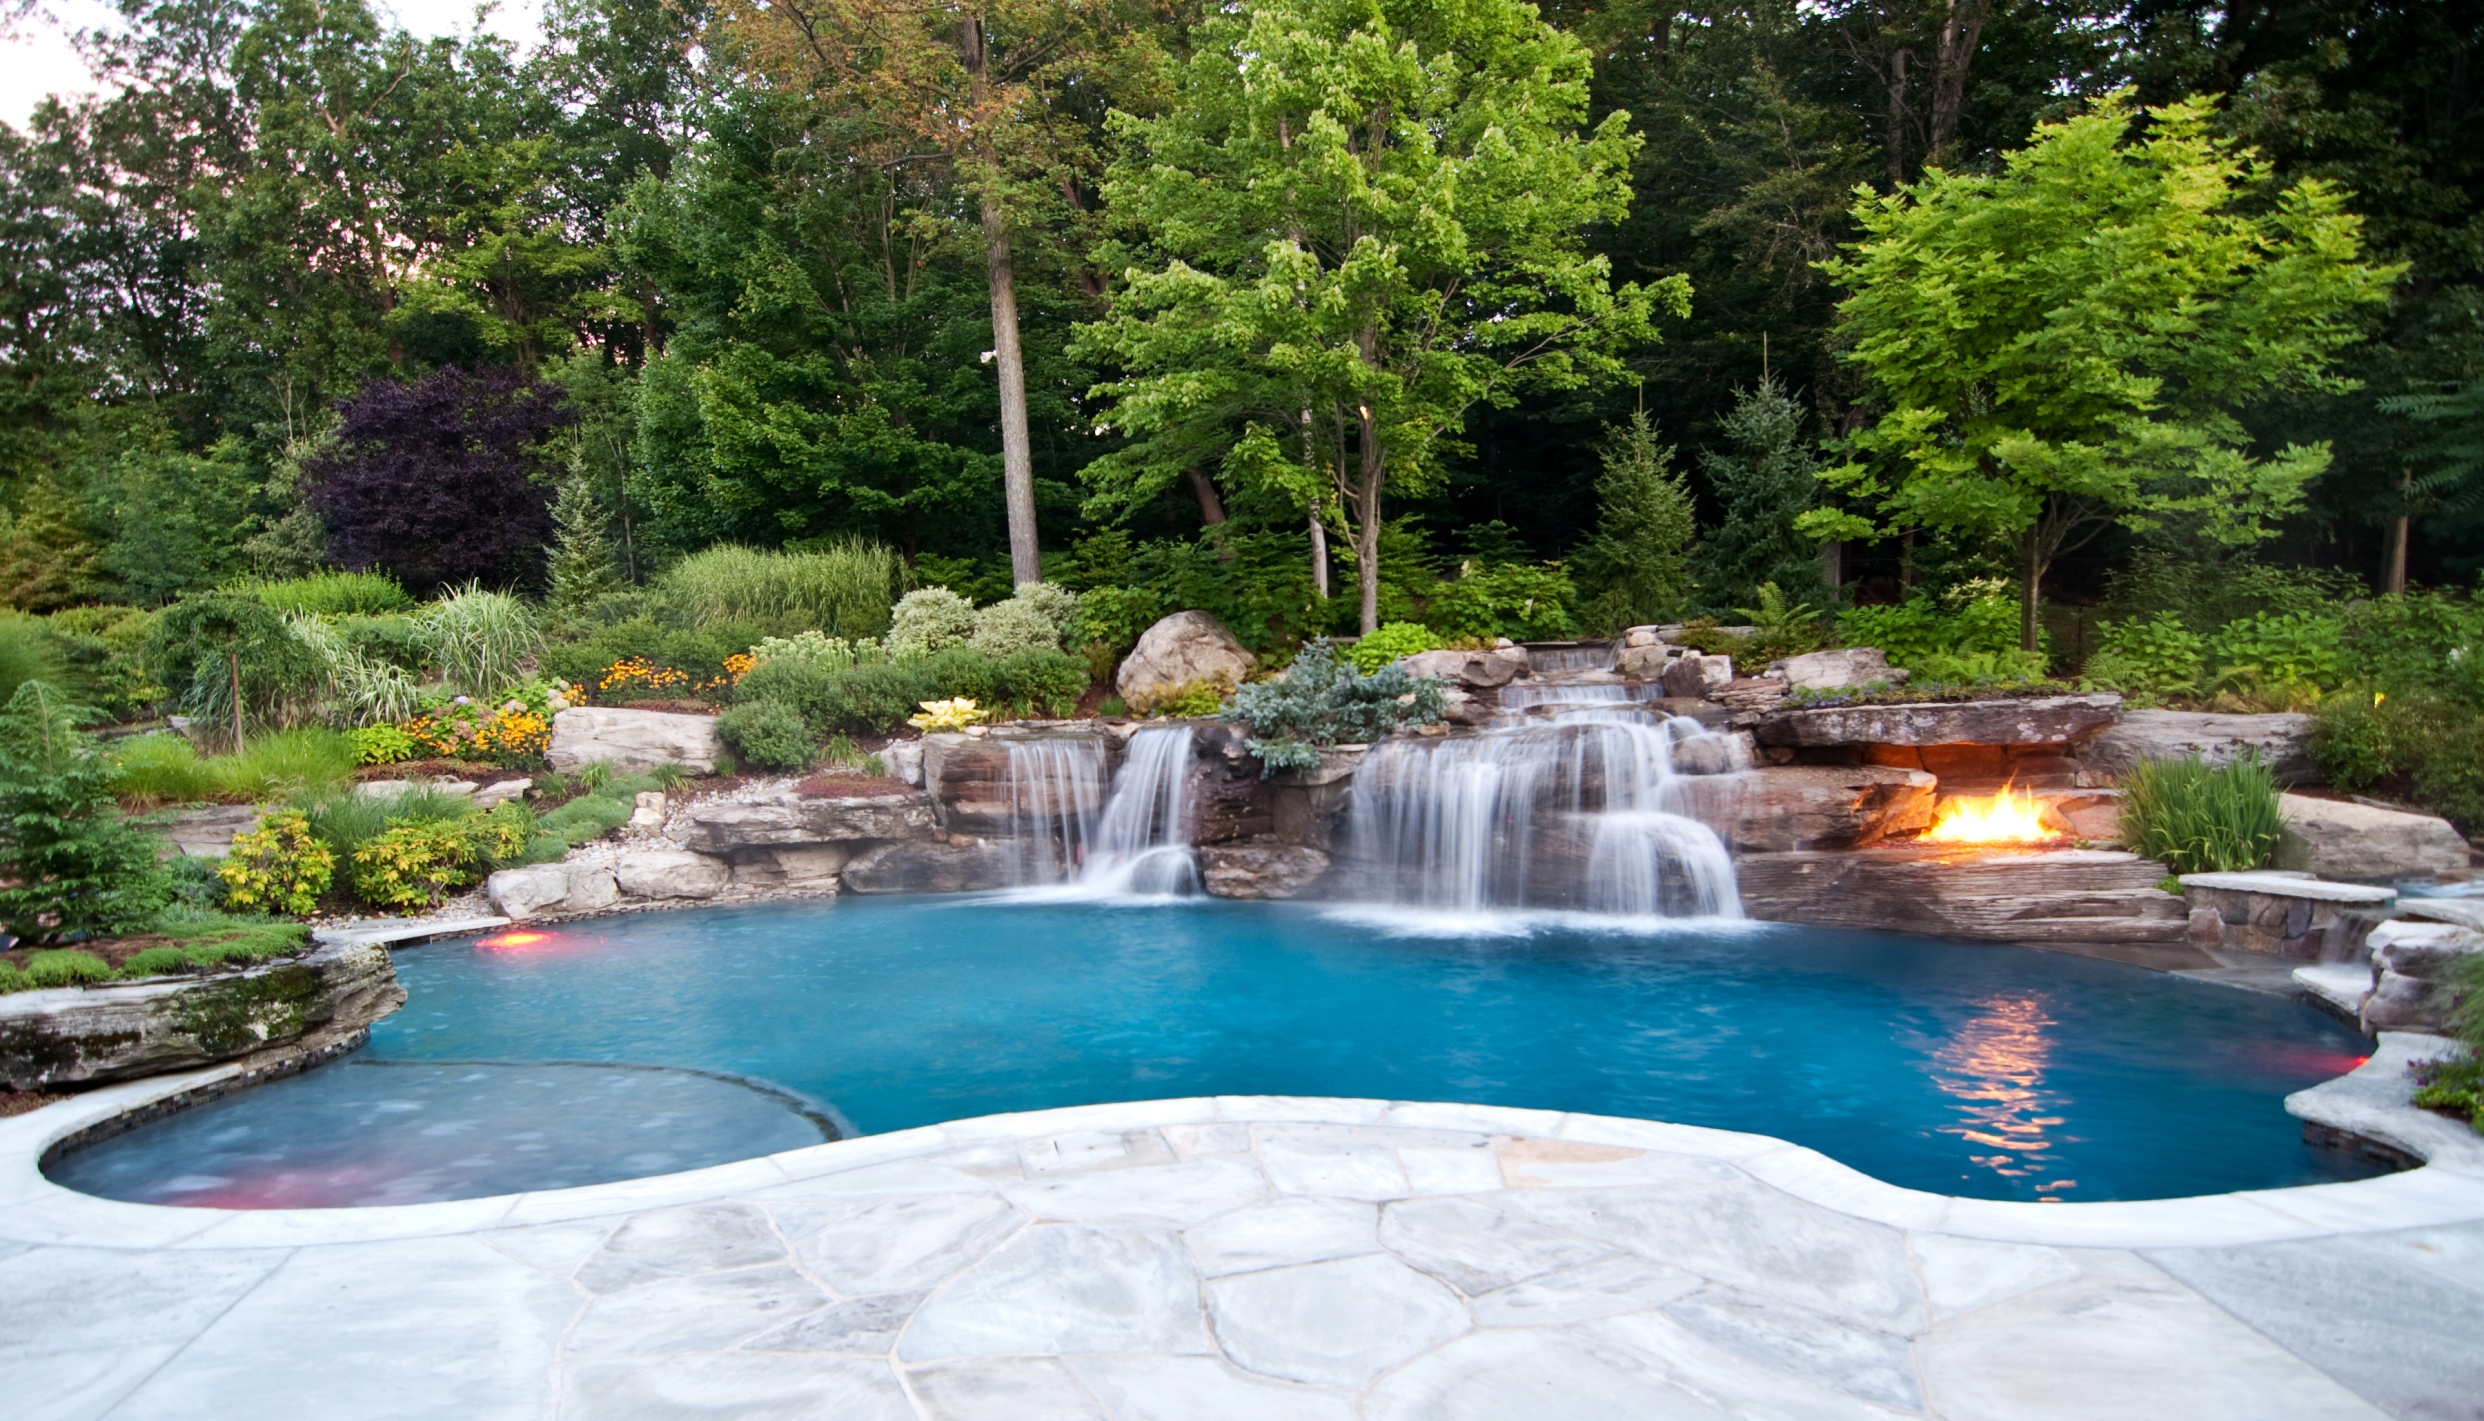 Backyard designs with pool and outdoor kitchen - large and beautiful ...